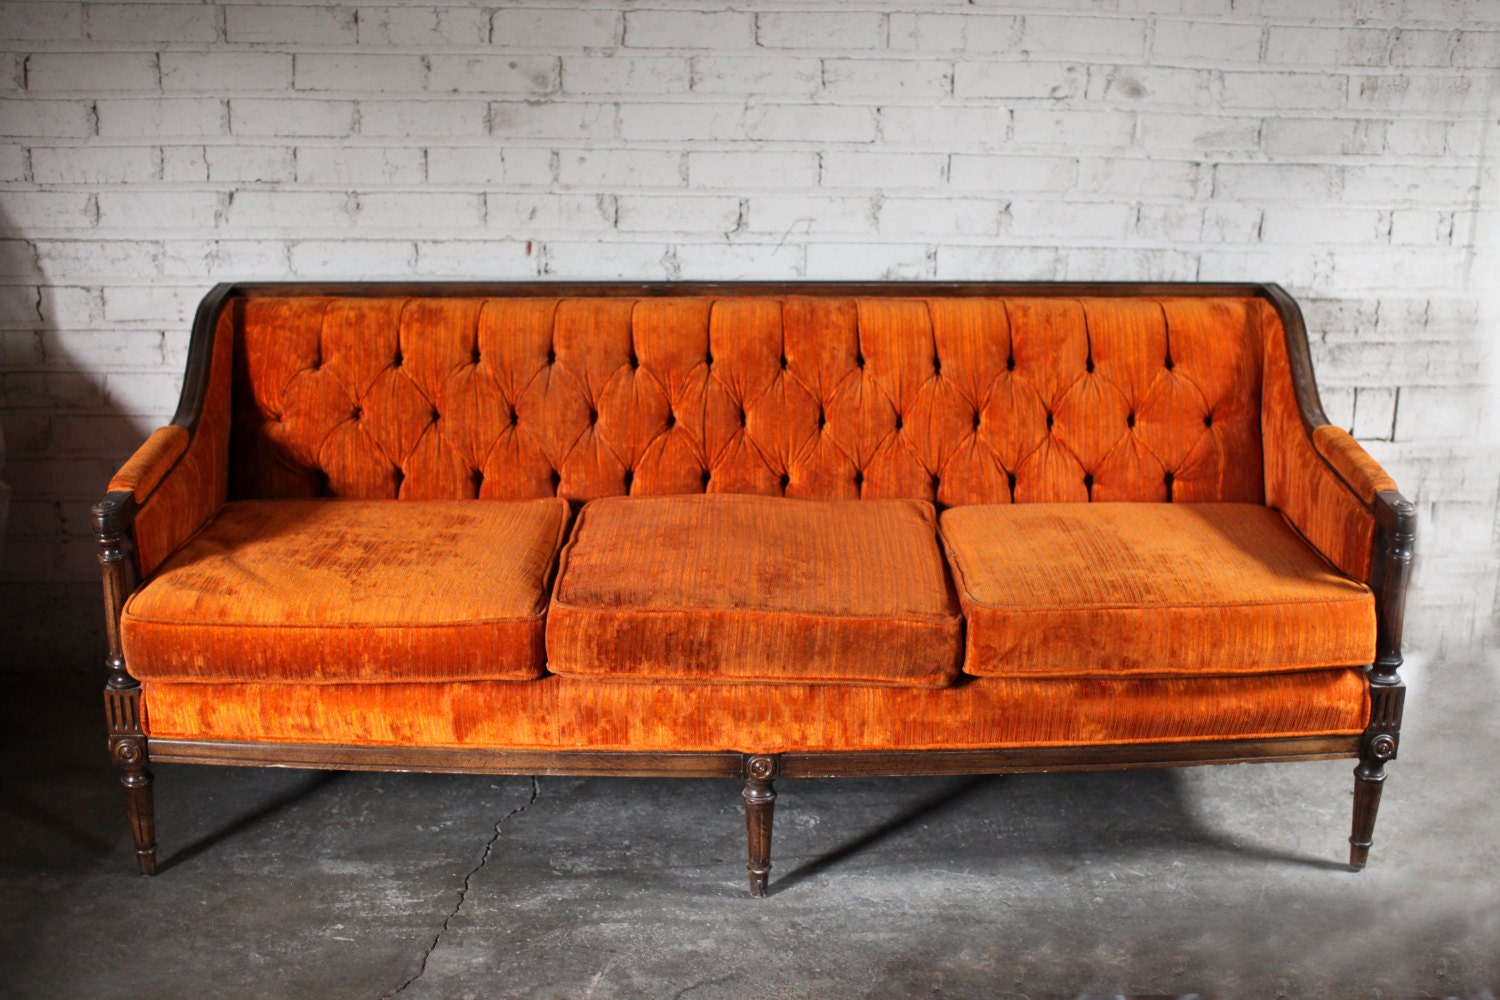 Fall vintage orange velvet tufted sofa couch sale for Tufted couches for sale